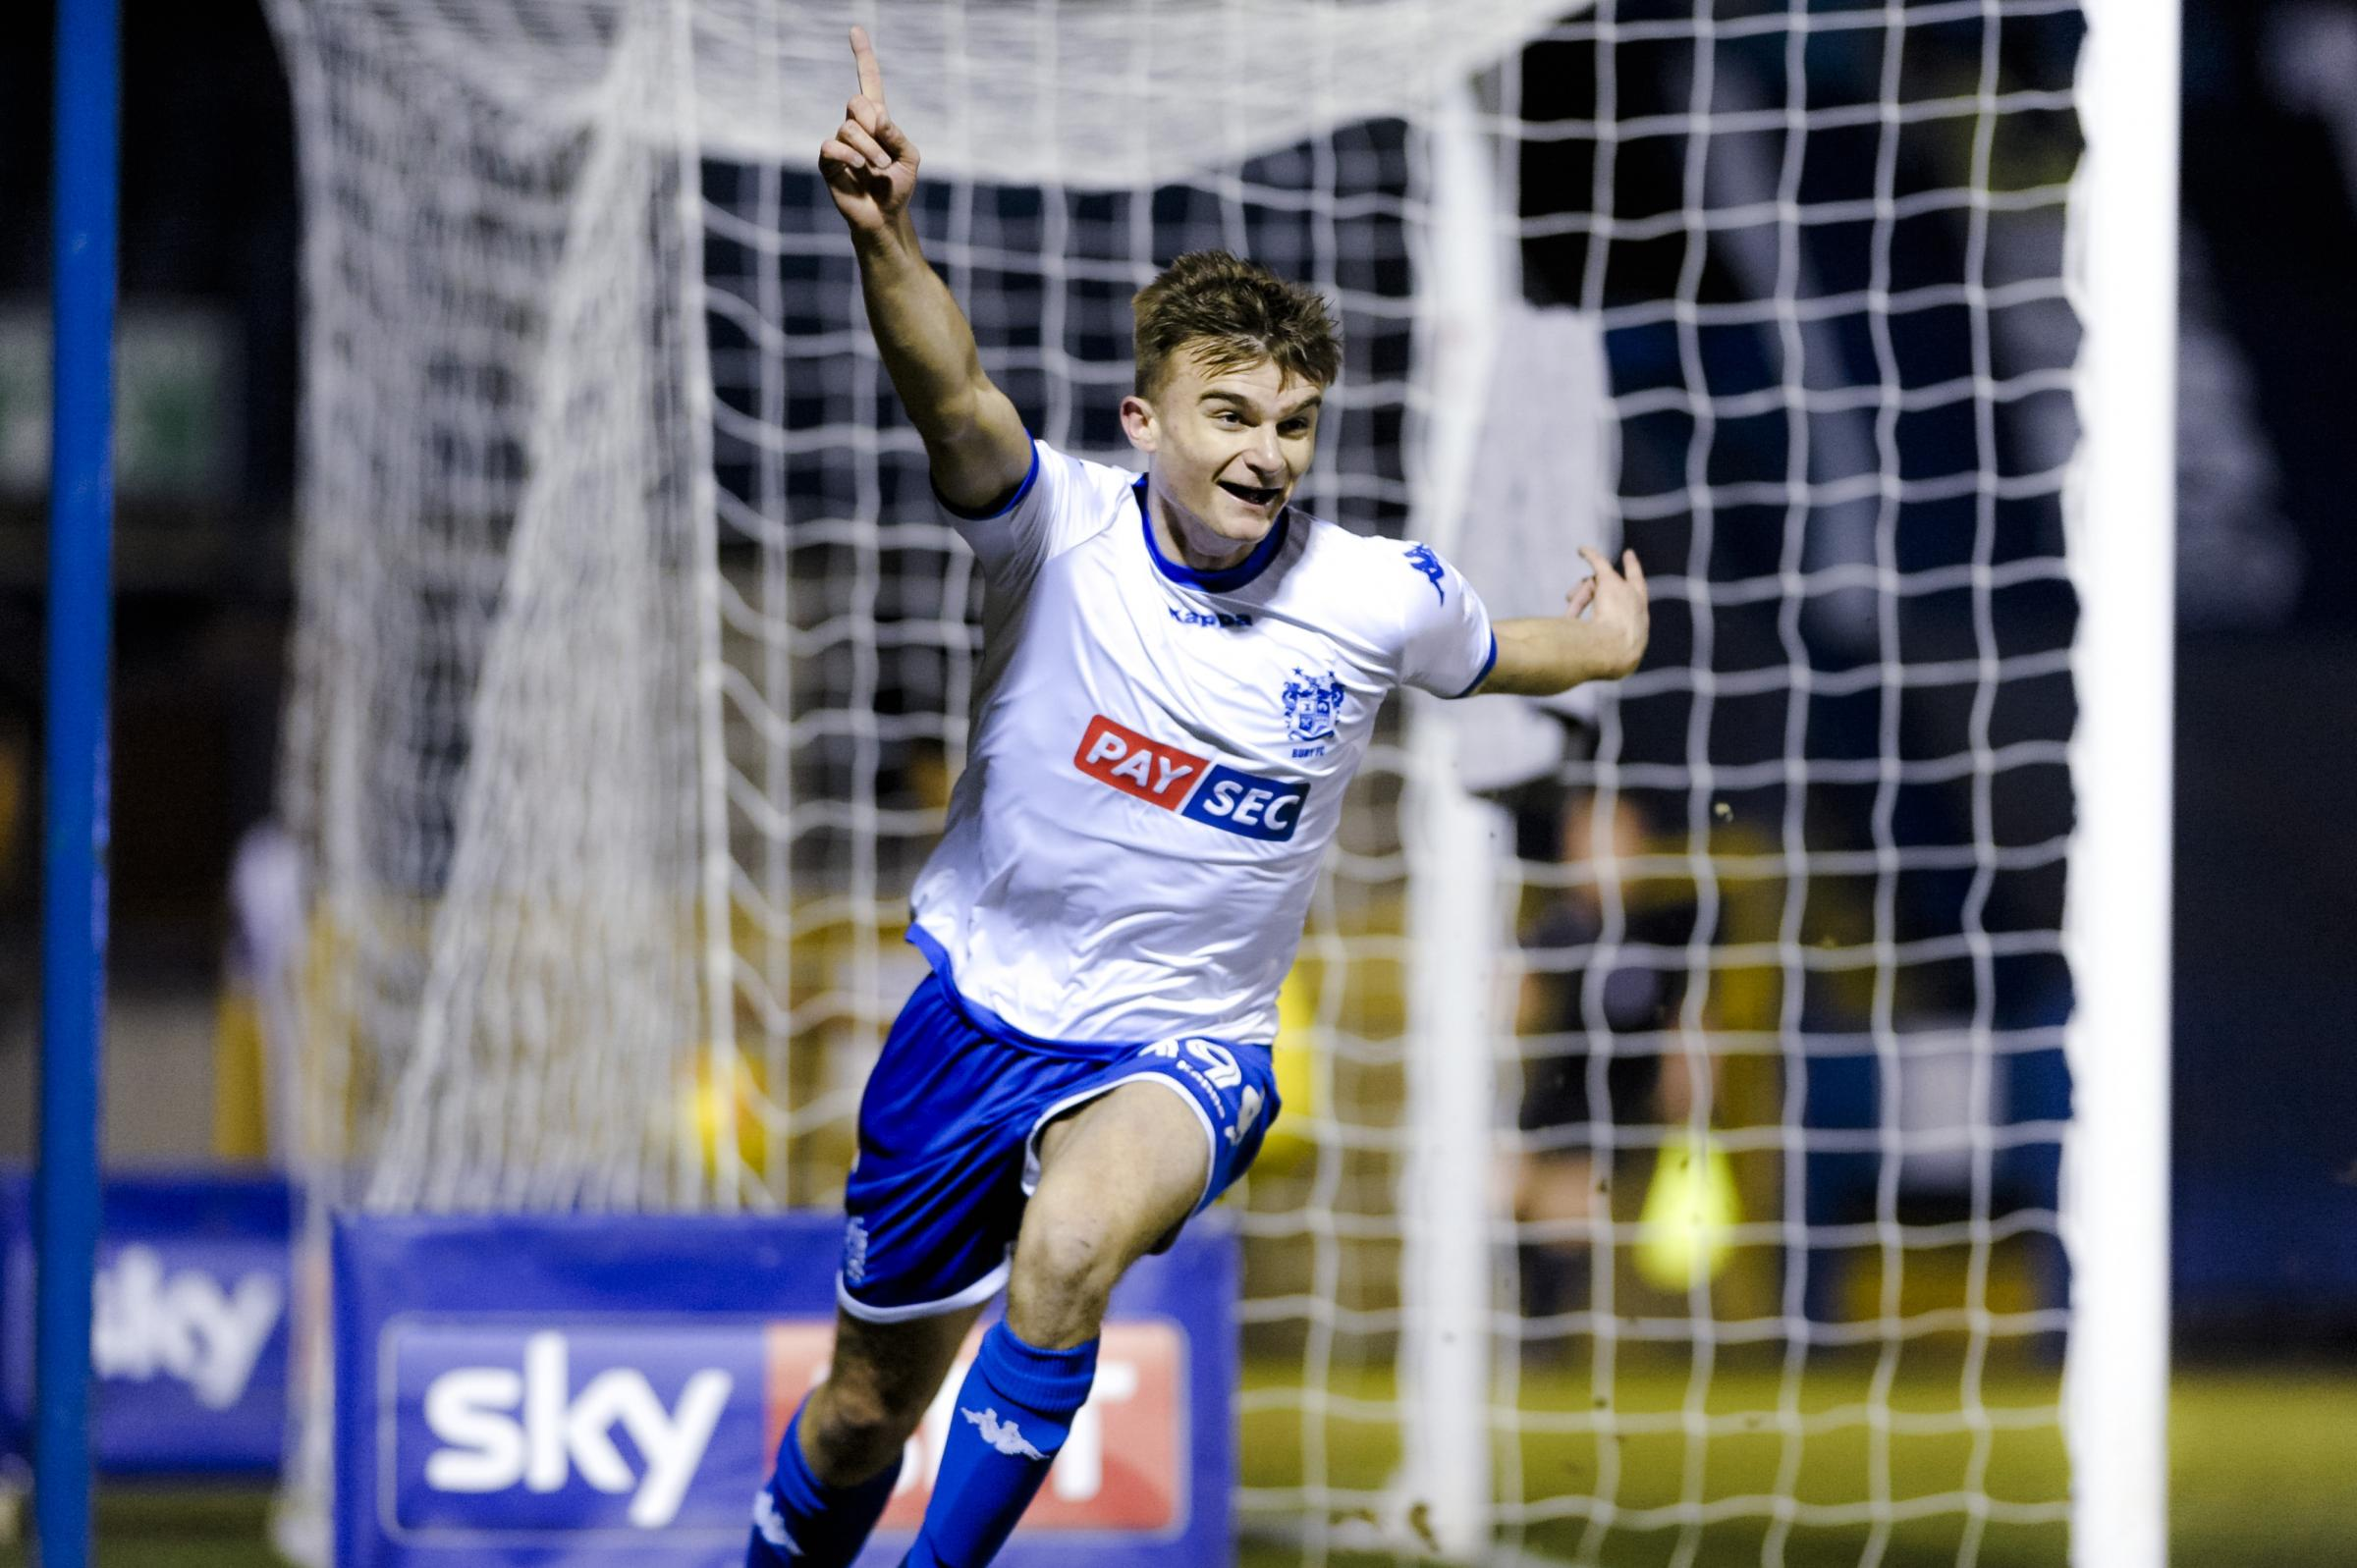 MILLER THRILL: Bury forward George Miller is delighted as he celebrates his goal against AFC Wimbledon. Picture by Andy Whitehead Photography